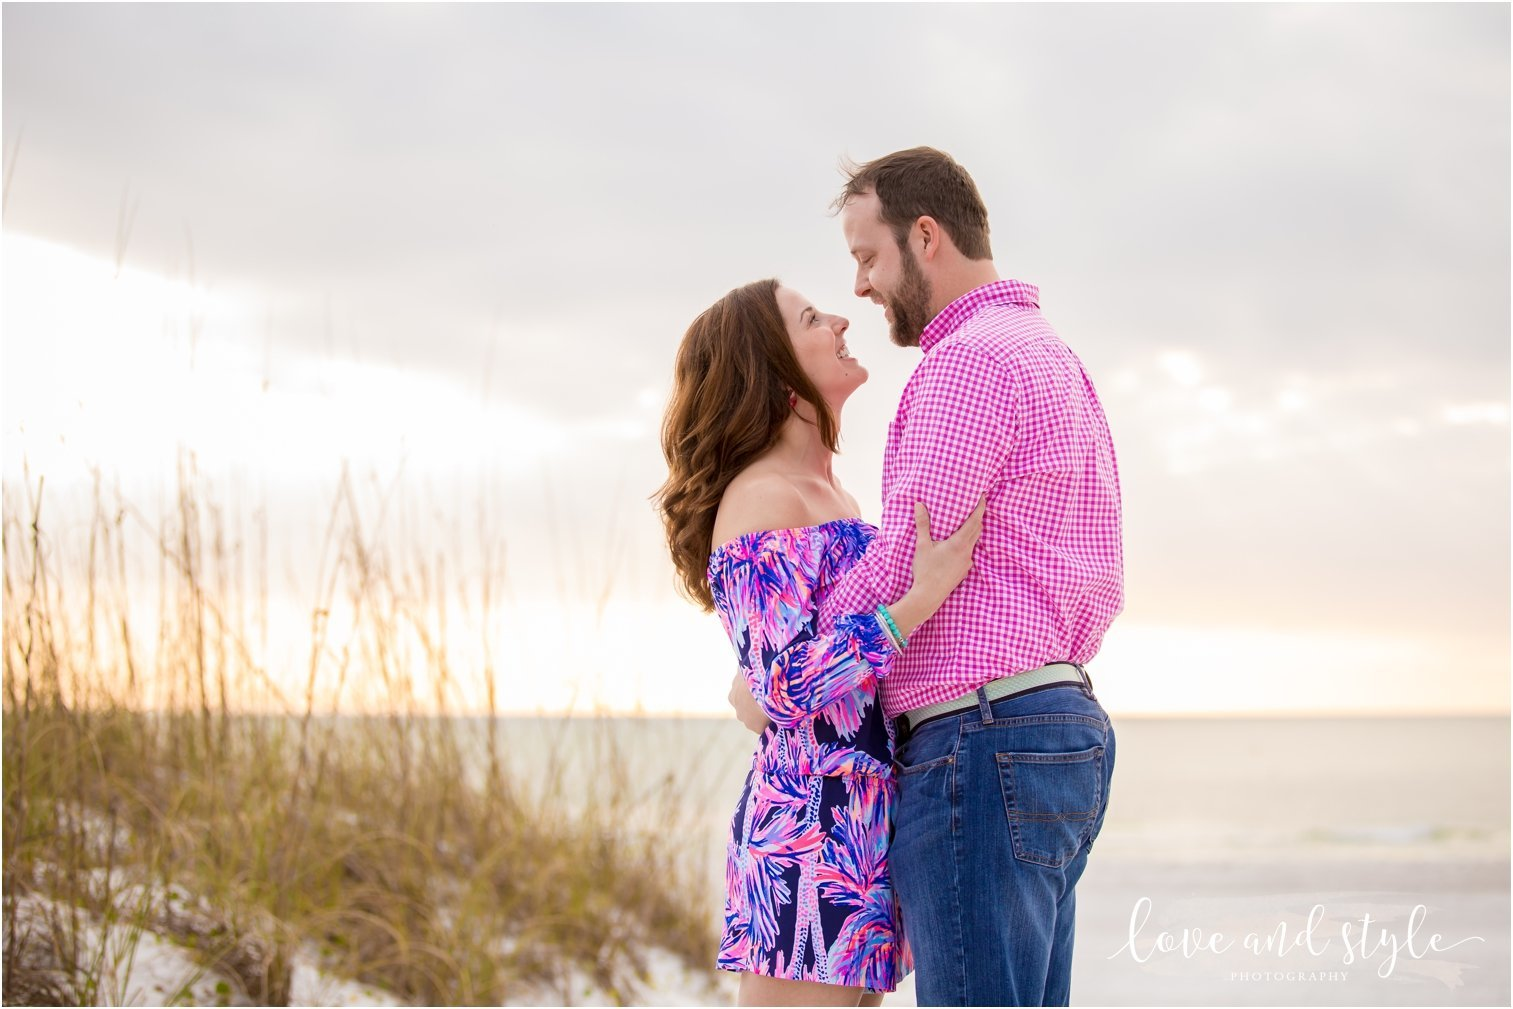 Engagement Photography on Coquina Beach at Sunset with couple embracing on Anna Maria Island